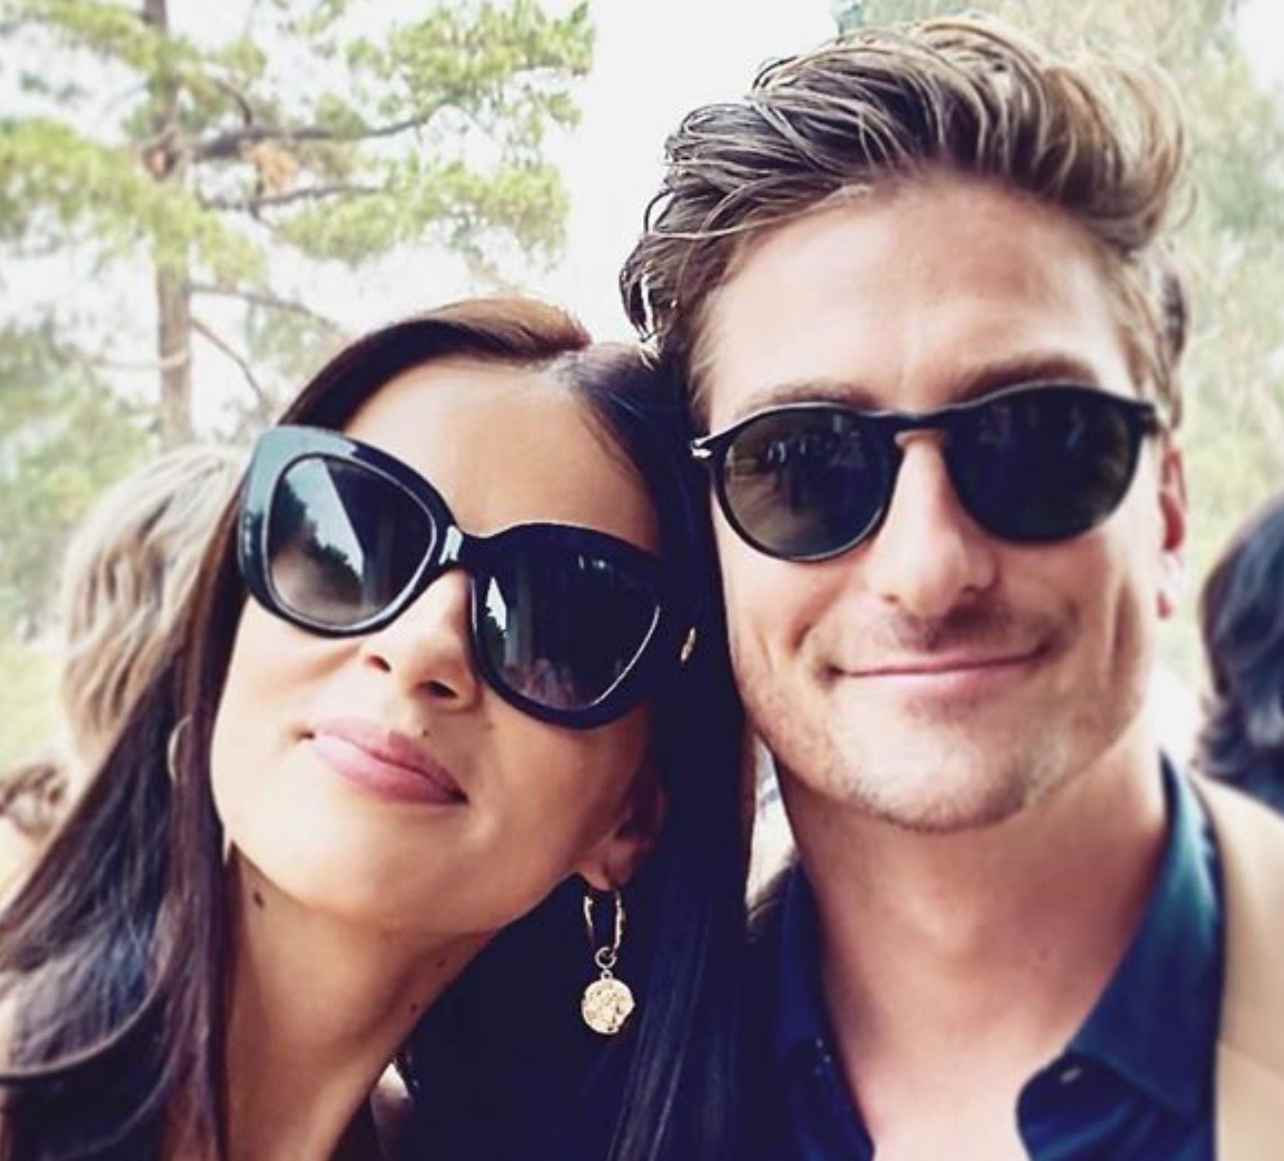 Image of the wife of celebrity named Daniel Lissing and Nadia Lissing